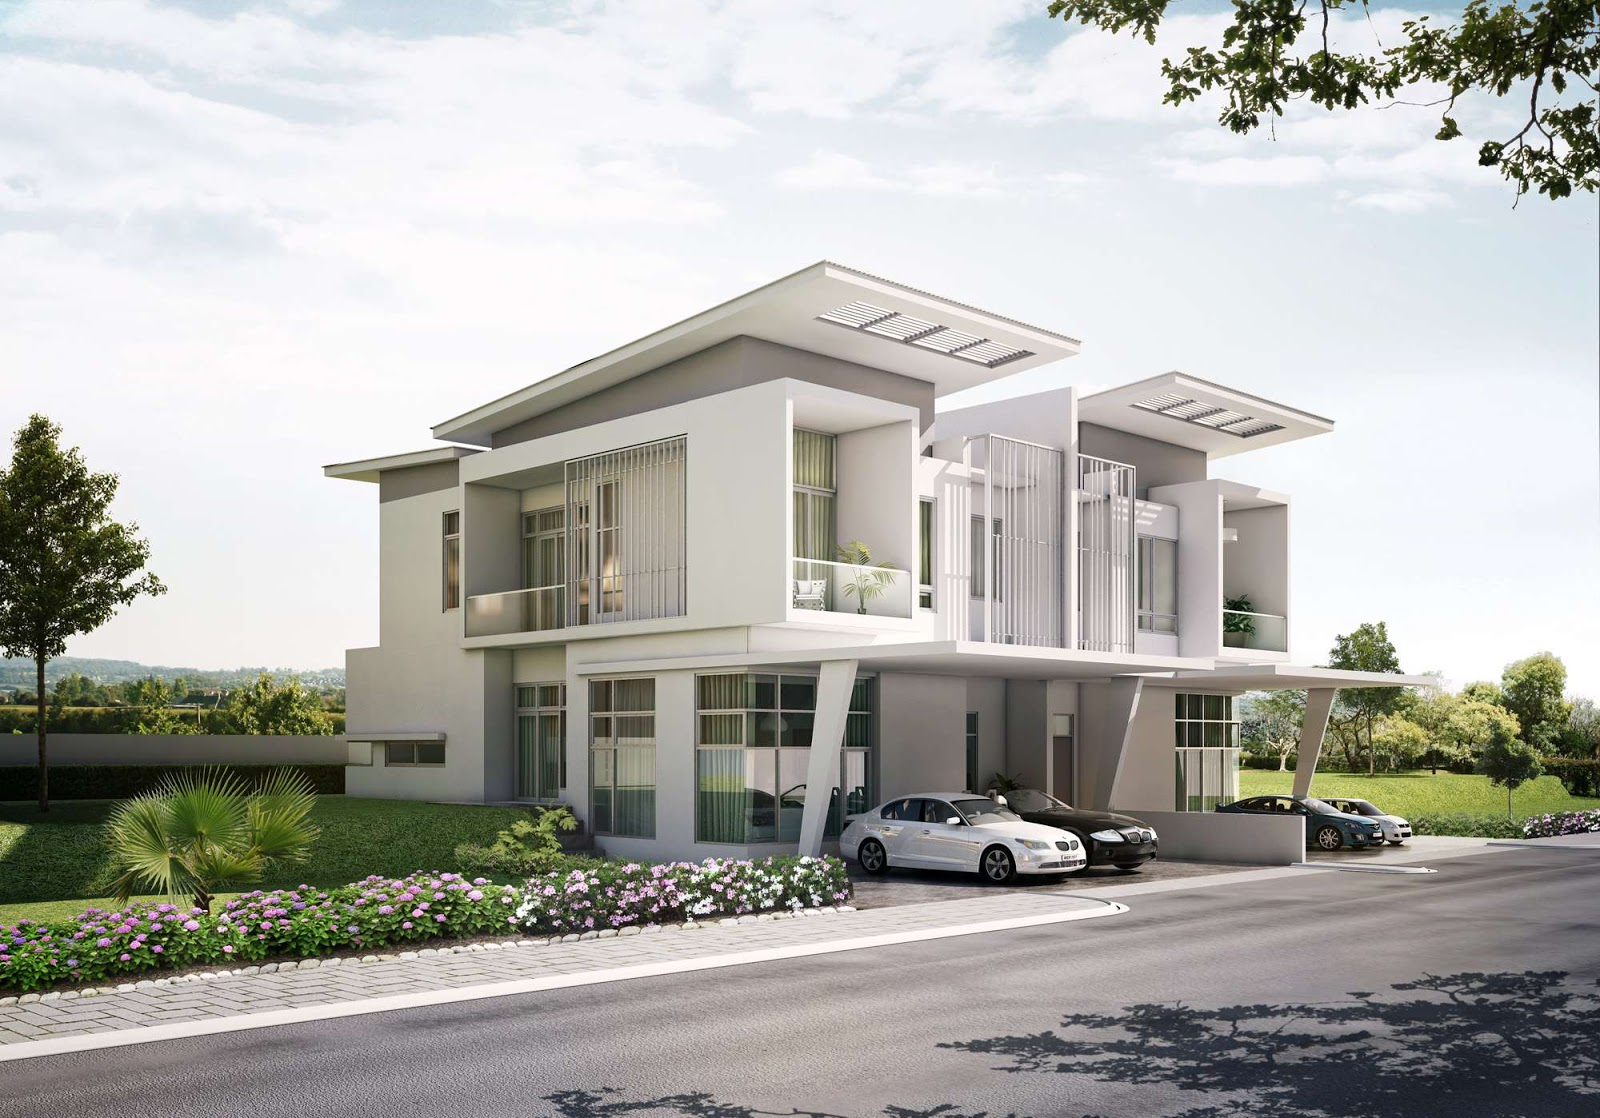 New home designs latest singapore modern homes exterior for House outside design ideas